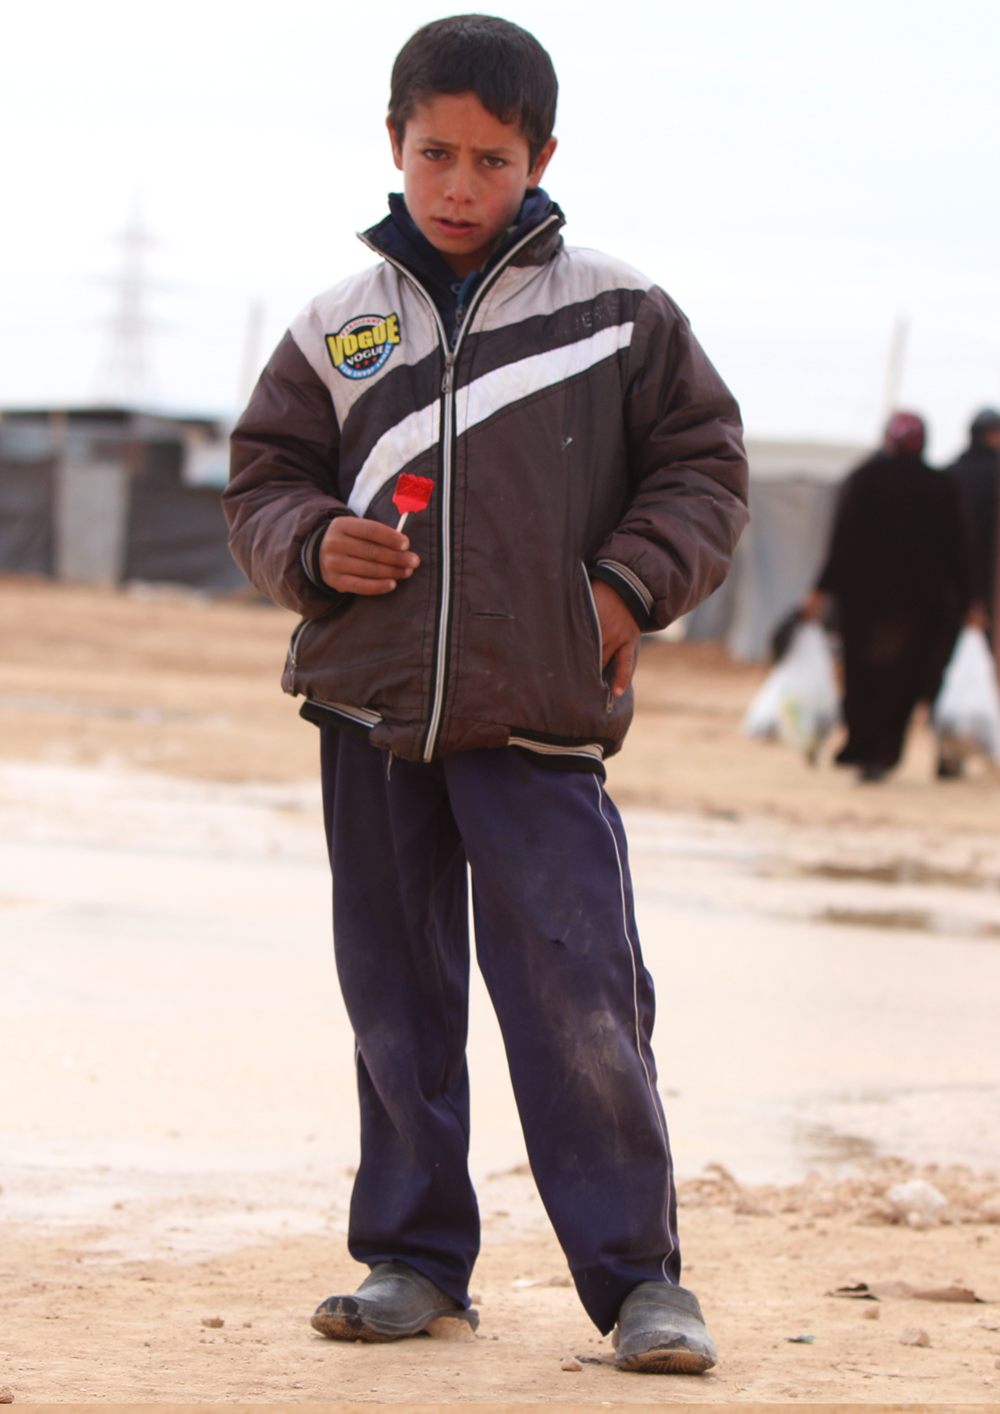 Syrian refugee boy with candy